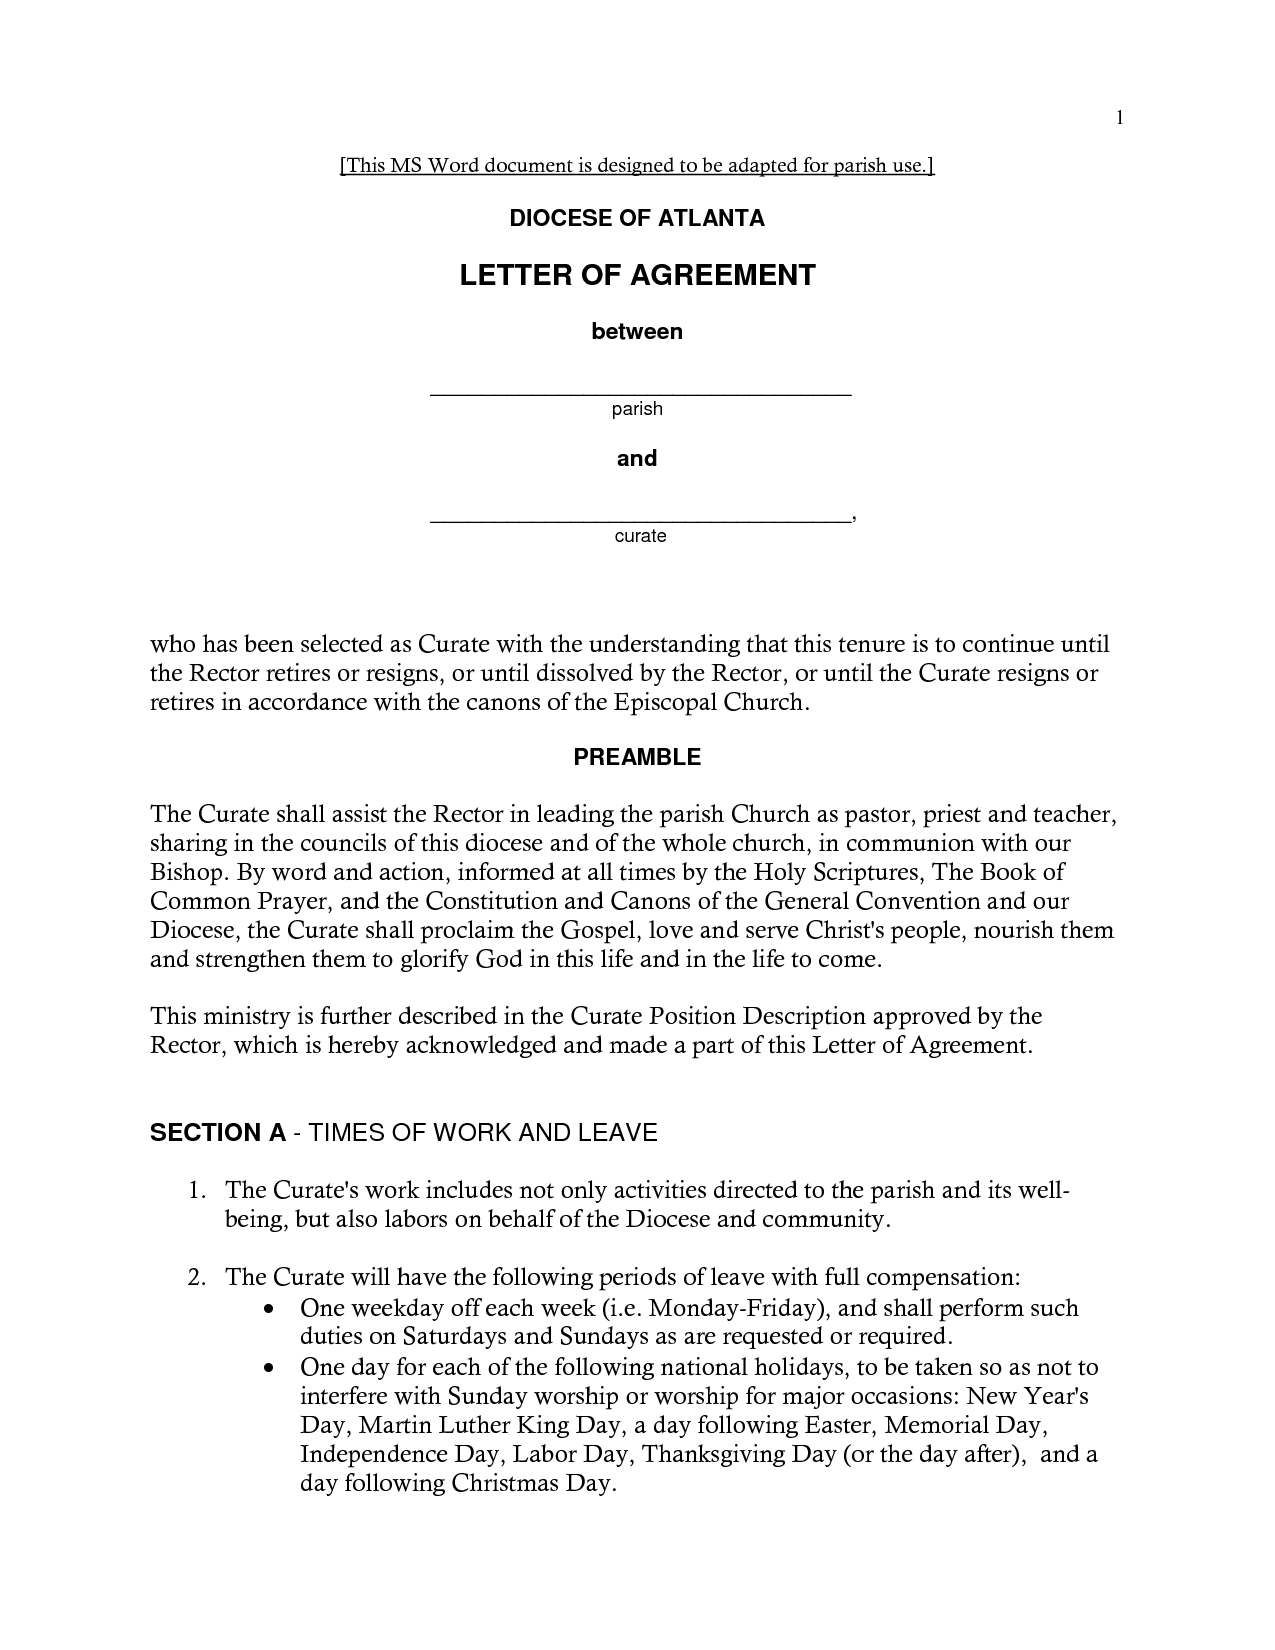 Sample letter of loan agreement: Sample letter of agreement pbs